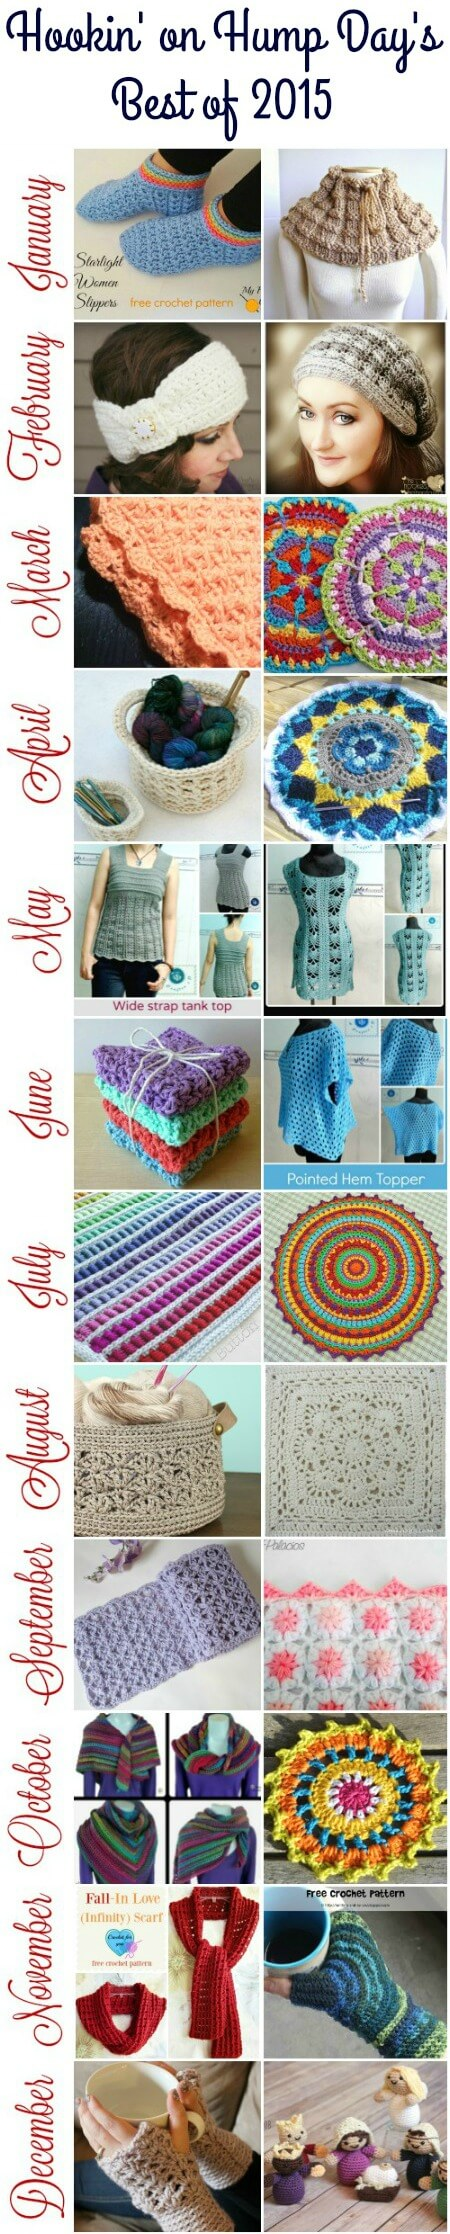 Hookin' on Hump Day Top Projects of 2015 #crochet #knit